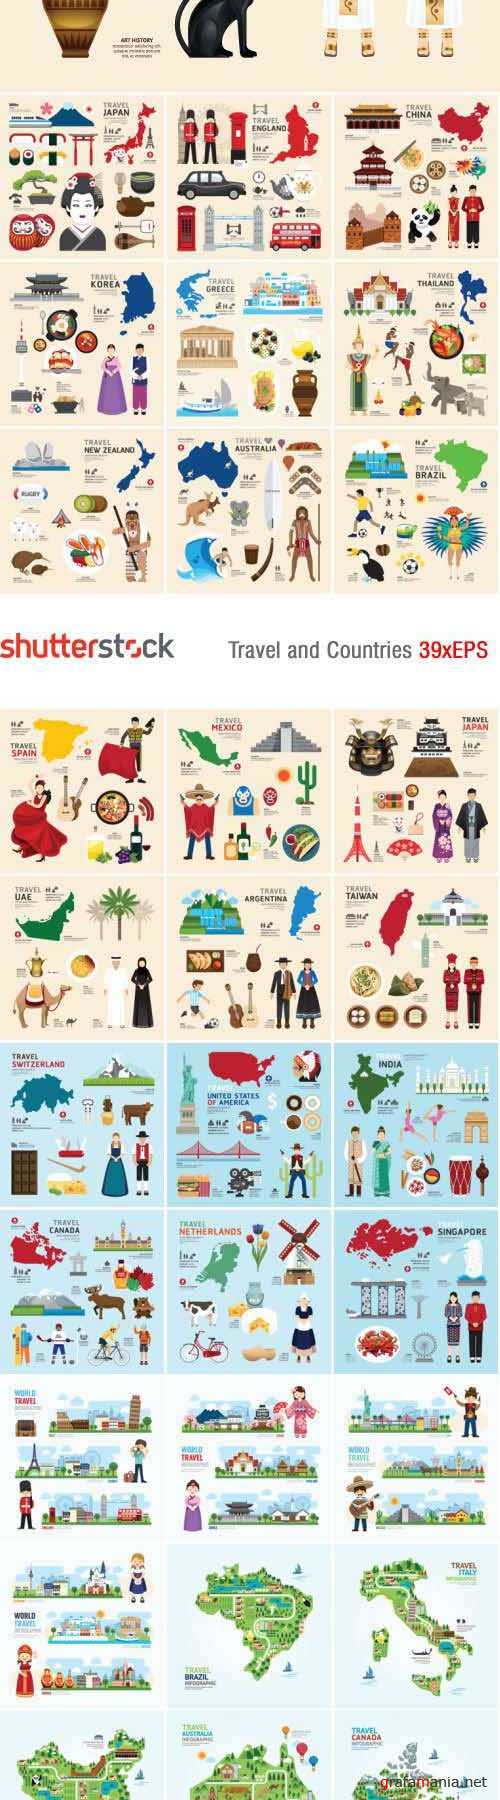 Travel & Countries Design Elements 39xEPS